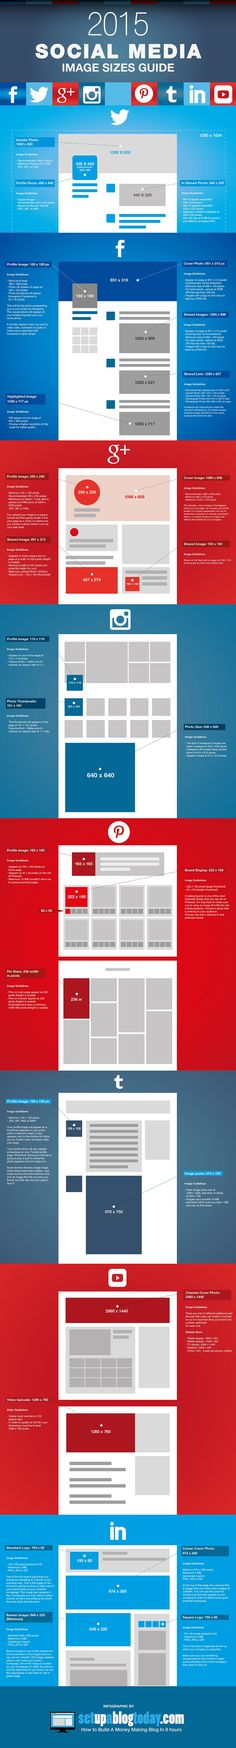 Social Media Image Sizes Guide 2015 - #SocialMedia #SocialNetworks #Infographic #Infographics #Twitter #FB #Facebook #GooglePlus #Instagram #Pinterest #tumblr #LinkedIn #YouTube